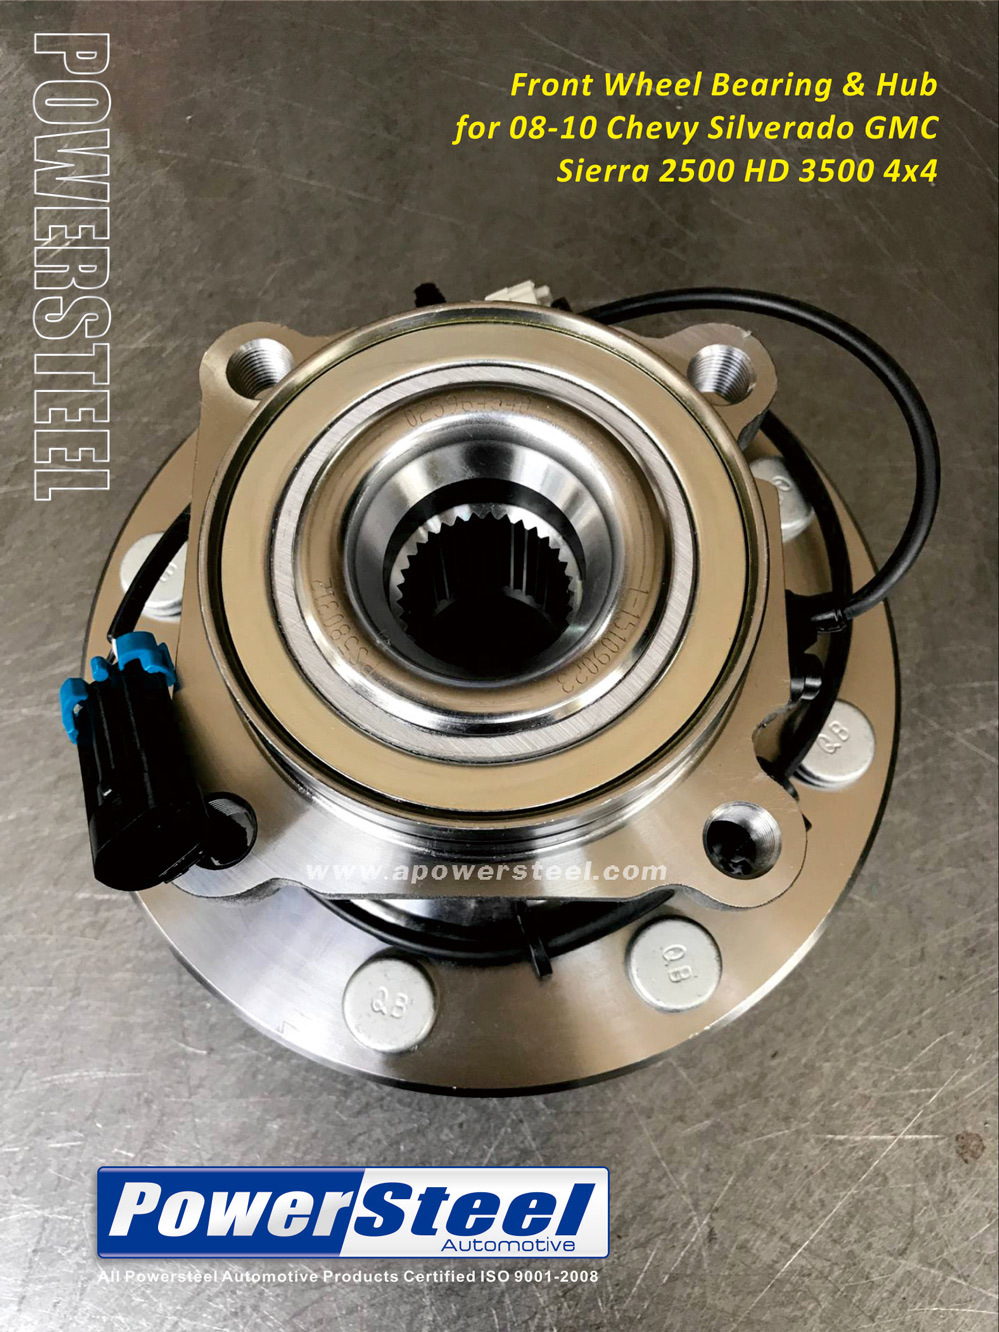 Front Wheel Hub Bearing Assembly for Chevrolet Silverado 1500 HD 2001-2006 4WD